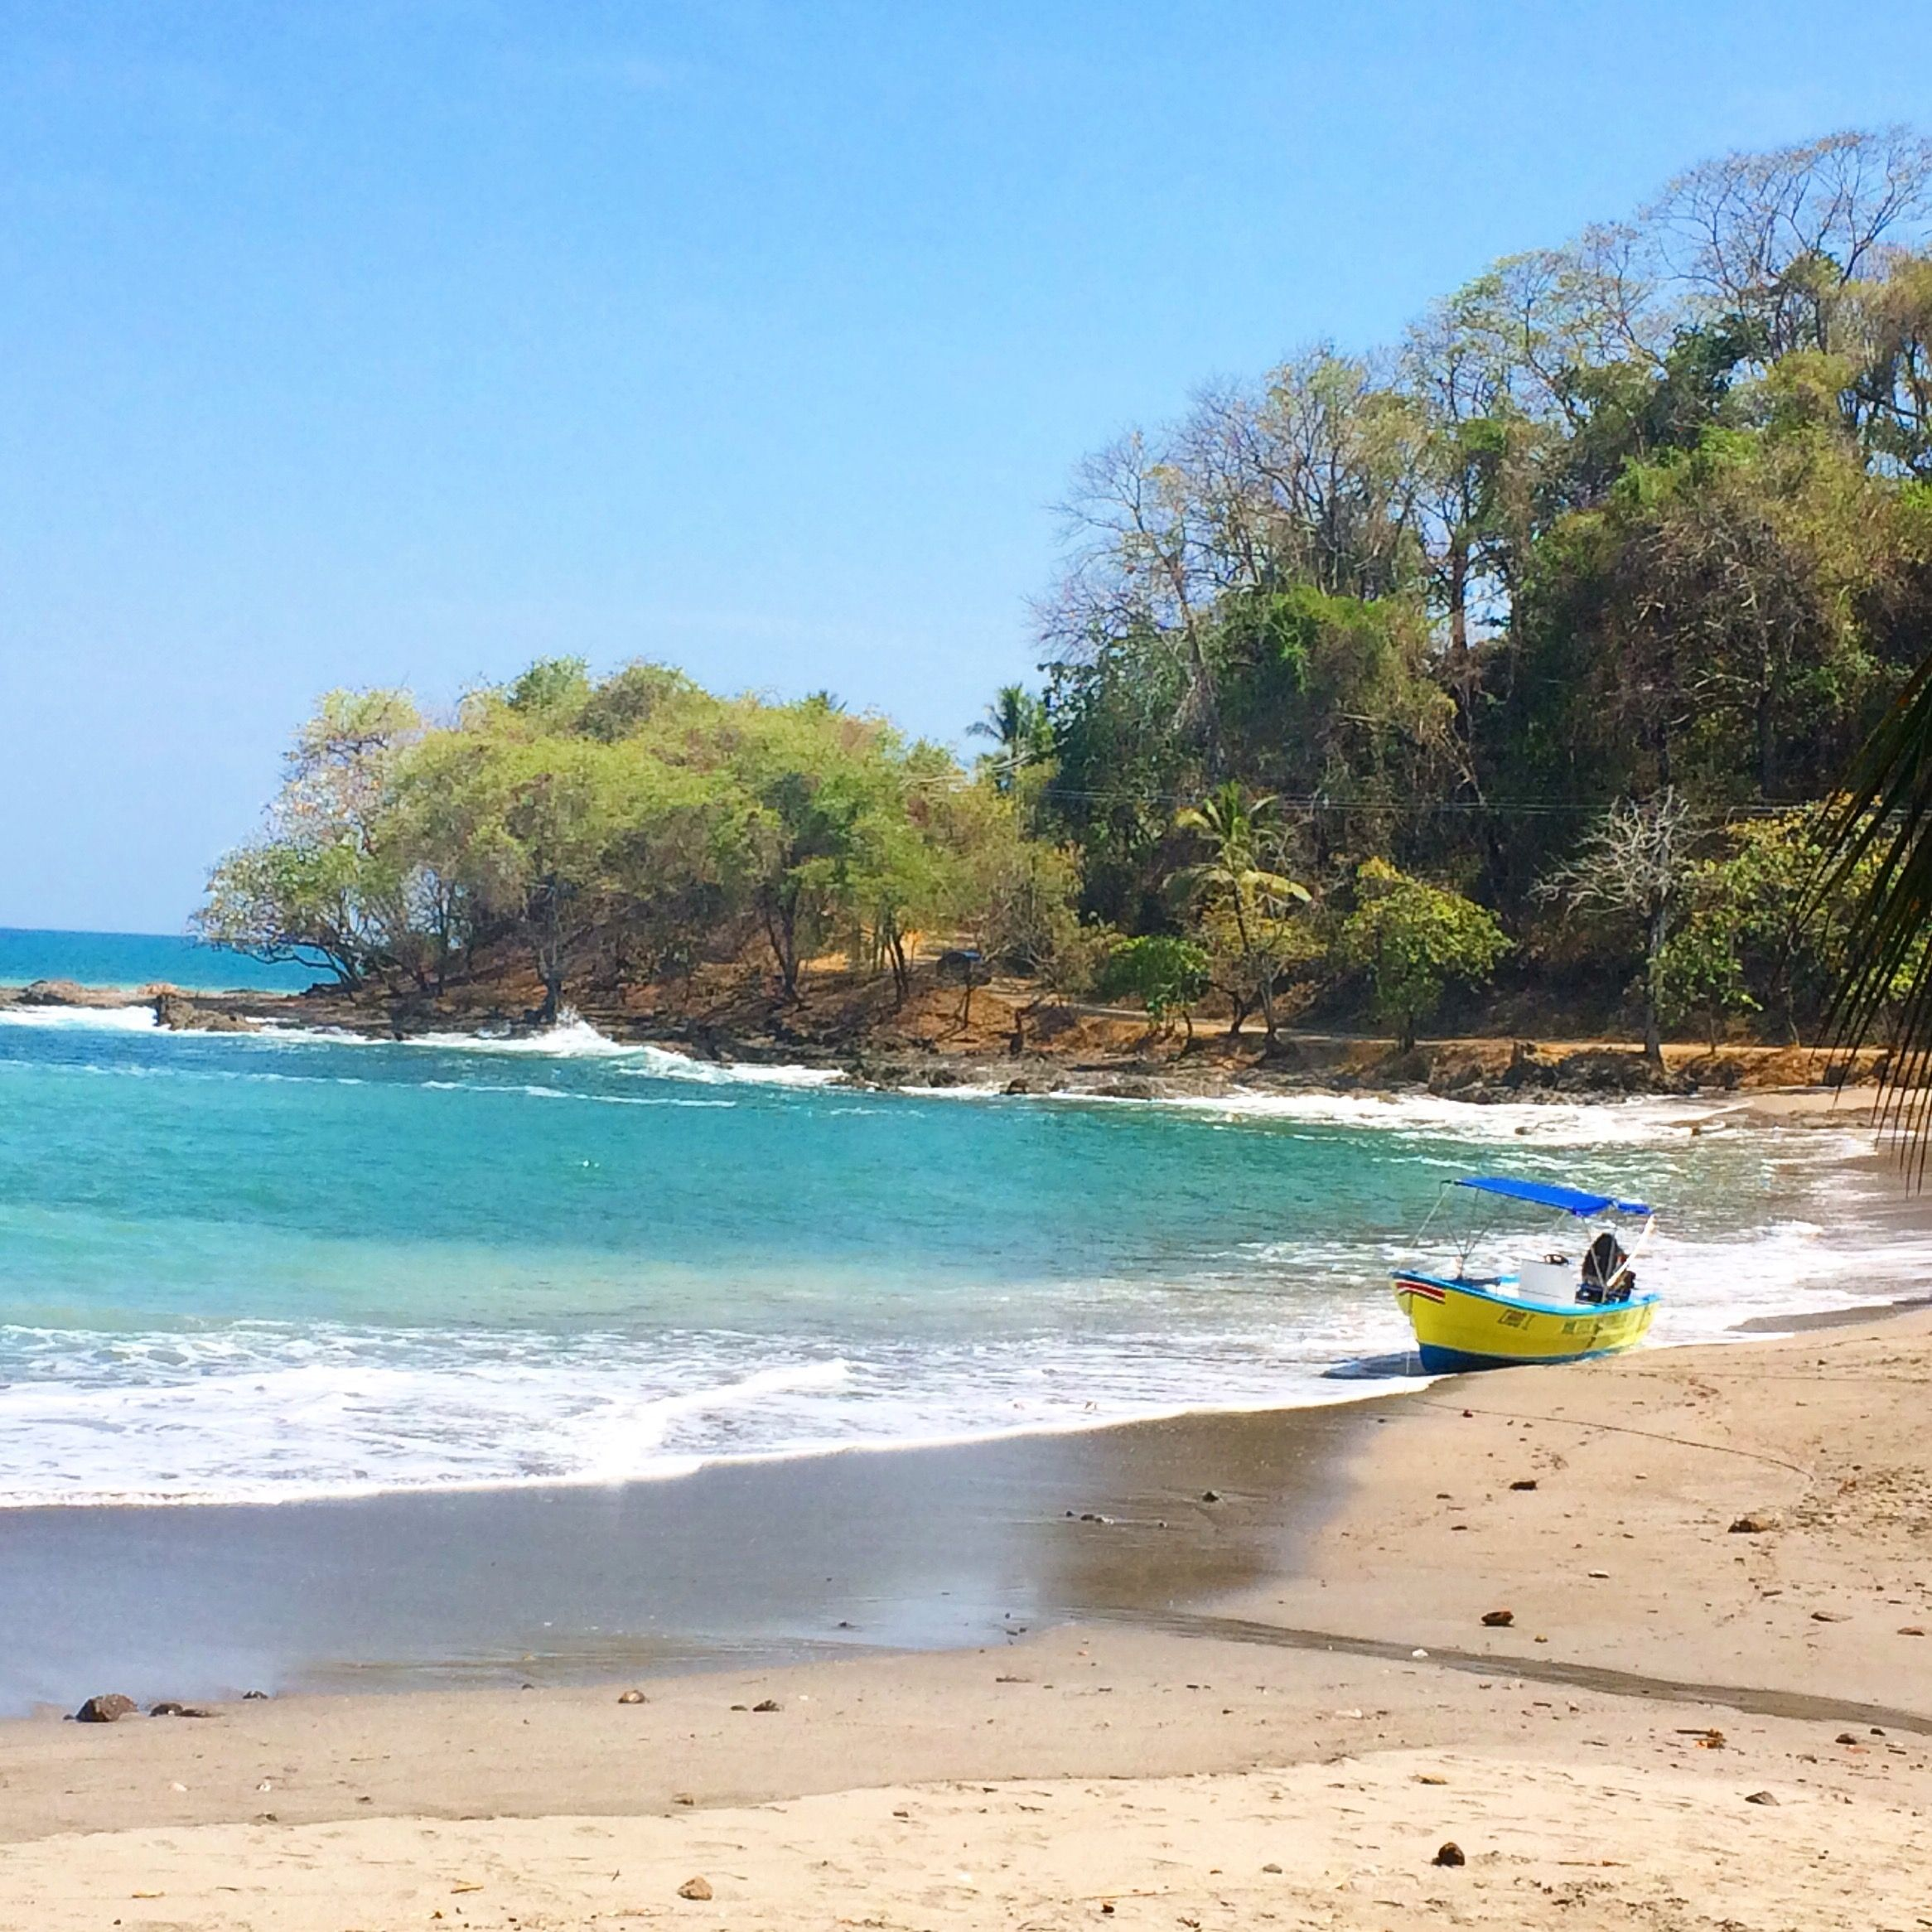 Montezuma Costa Rica: Enjoy The Surf And The Protected Coastline In Sunny